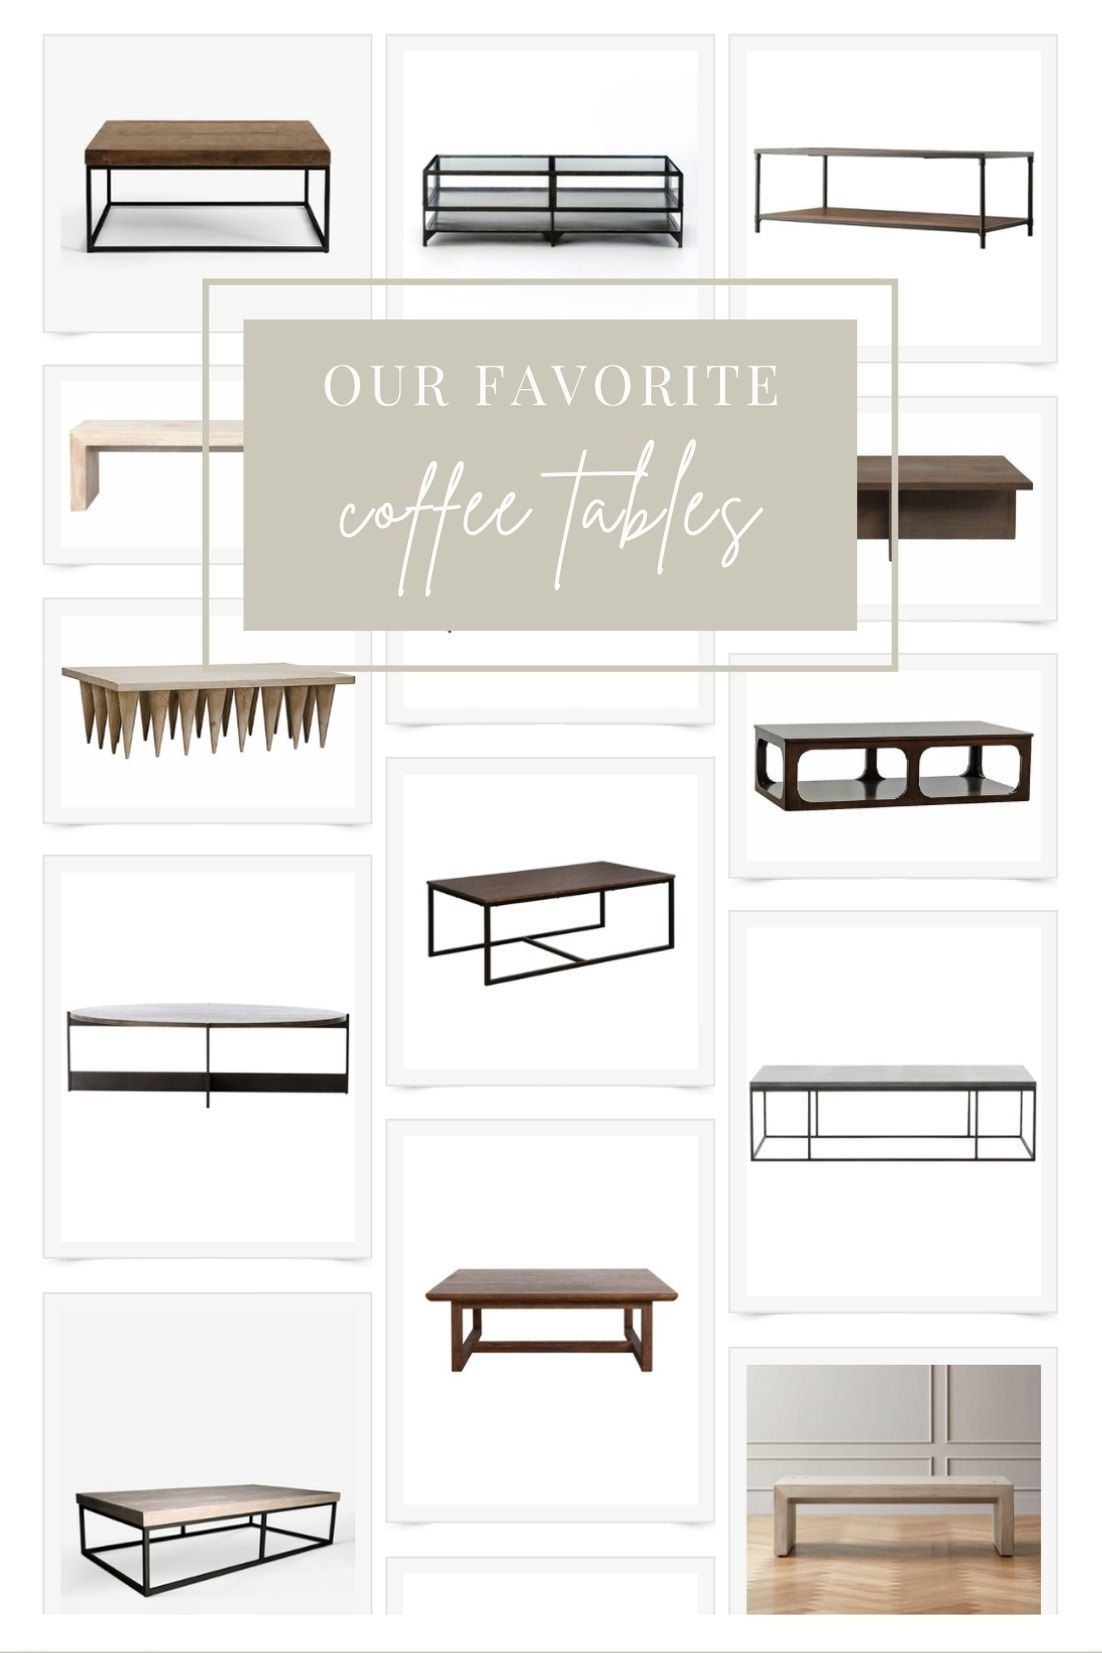 37+ Coffee table photo book sizes ideas in 2021